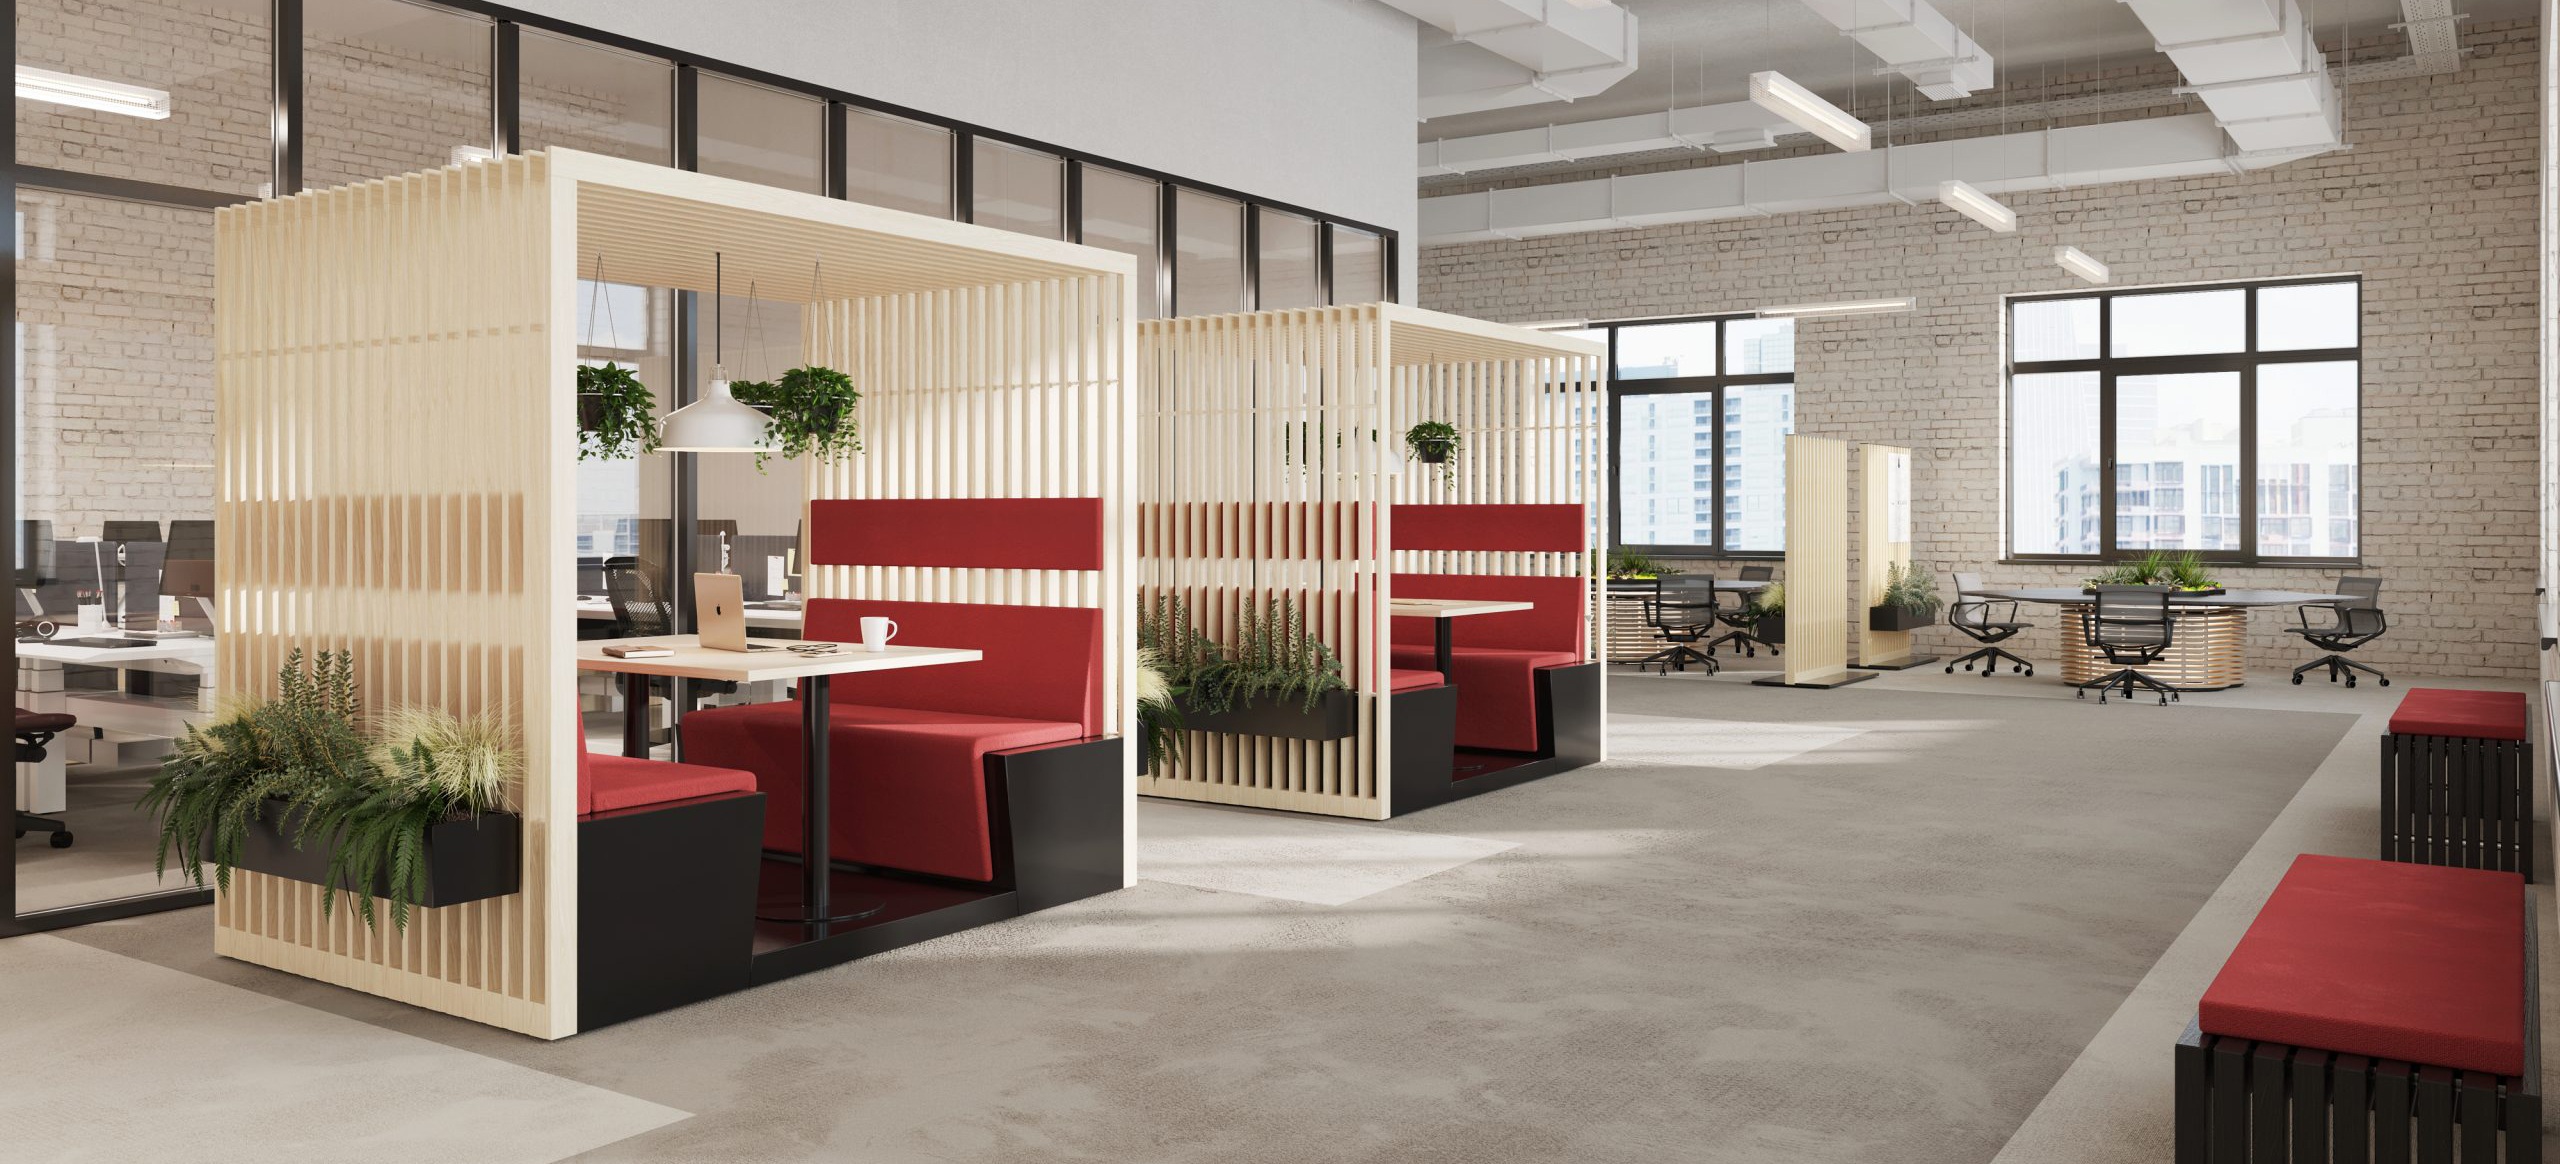 HK Designs Spaces Collection - Space 4 Four wooden slat breakout meeting booth with plants office view